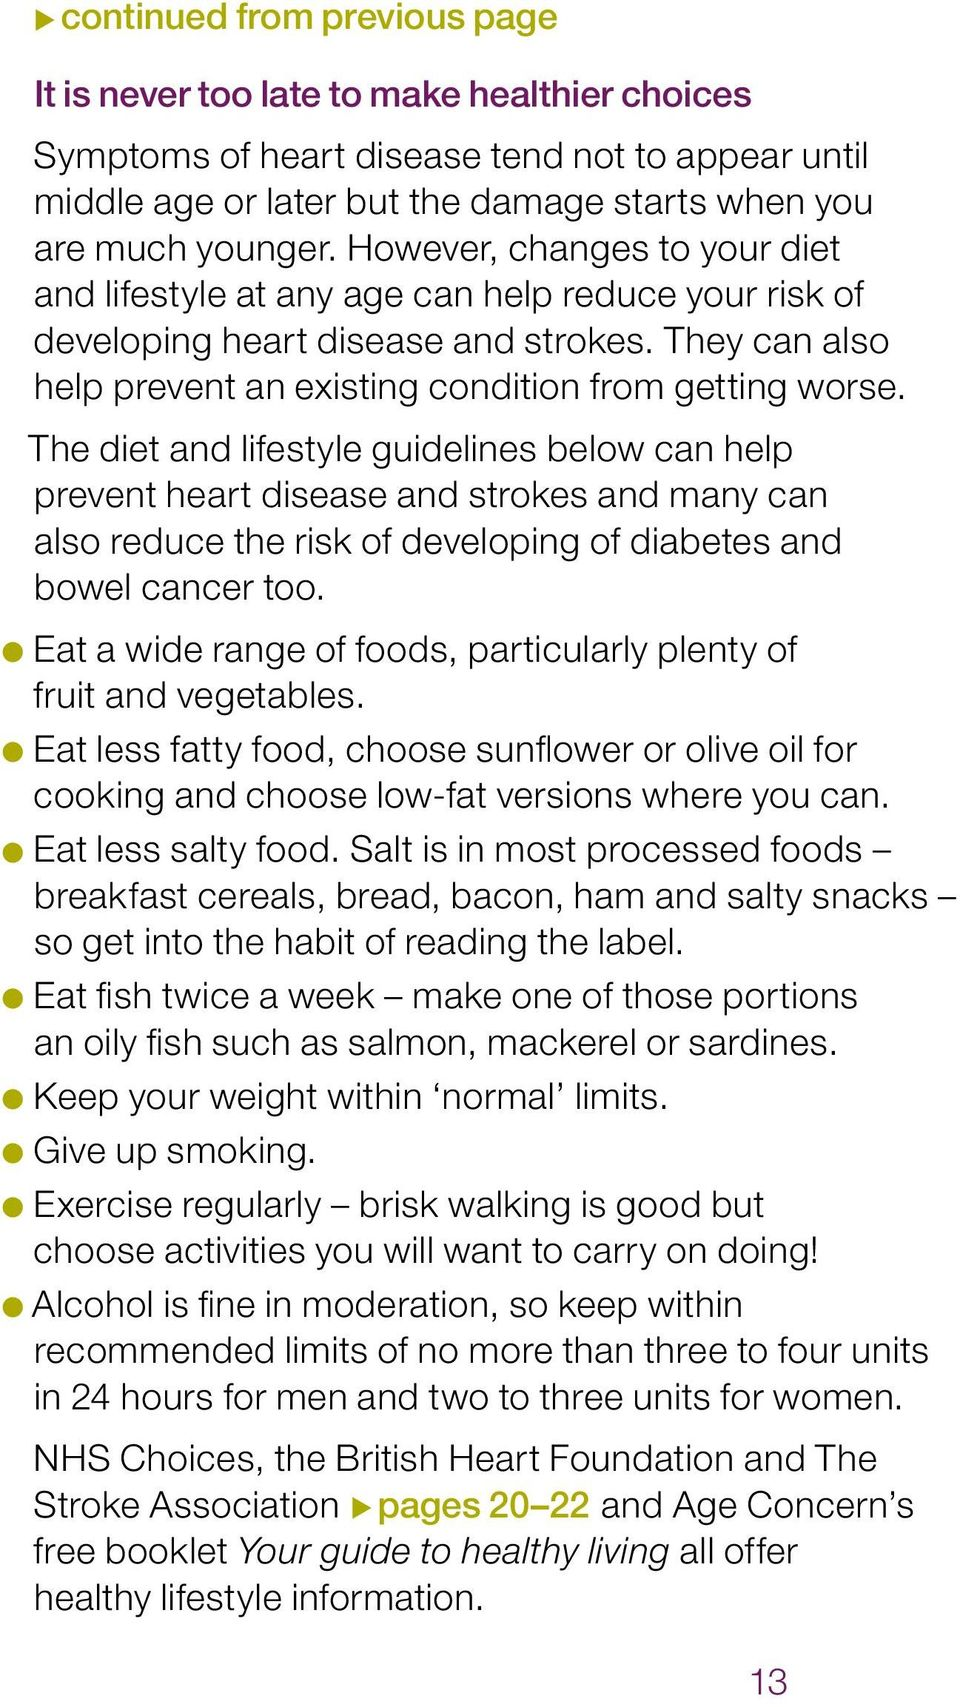 The diet and lifestyle guidelines below can help prevent heart disease and strokes and many can also reduce the risk of developing of diabetes and bowel cancer too.